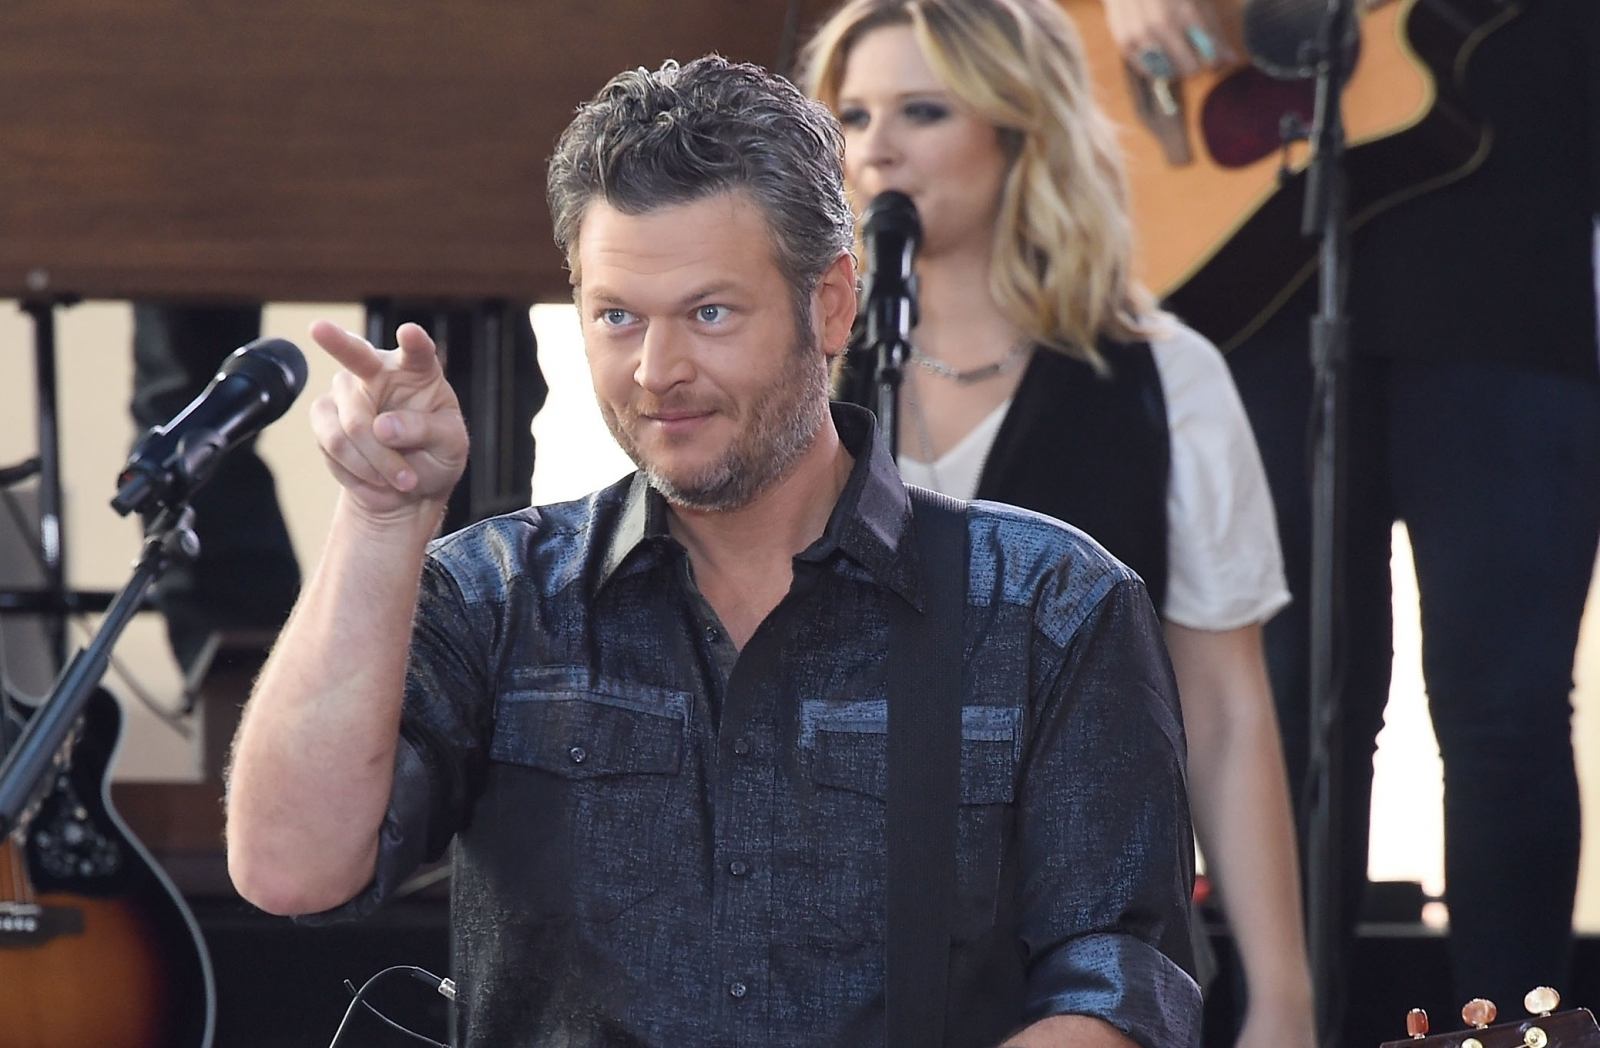 Blake Shelton 'Sexiest Man Alive'? Few praises sung for People pick